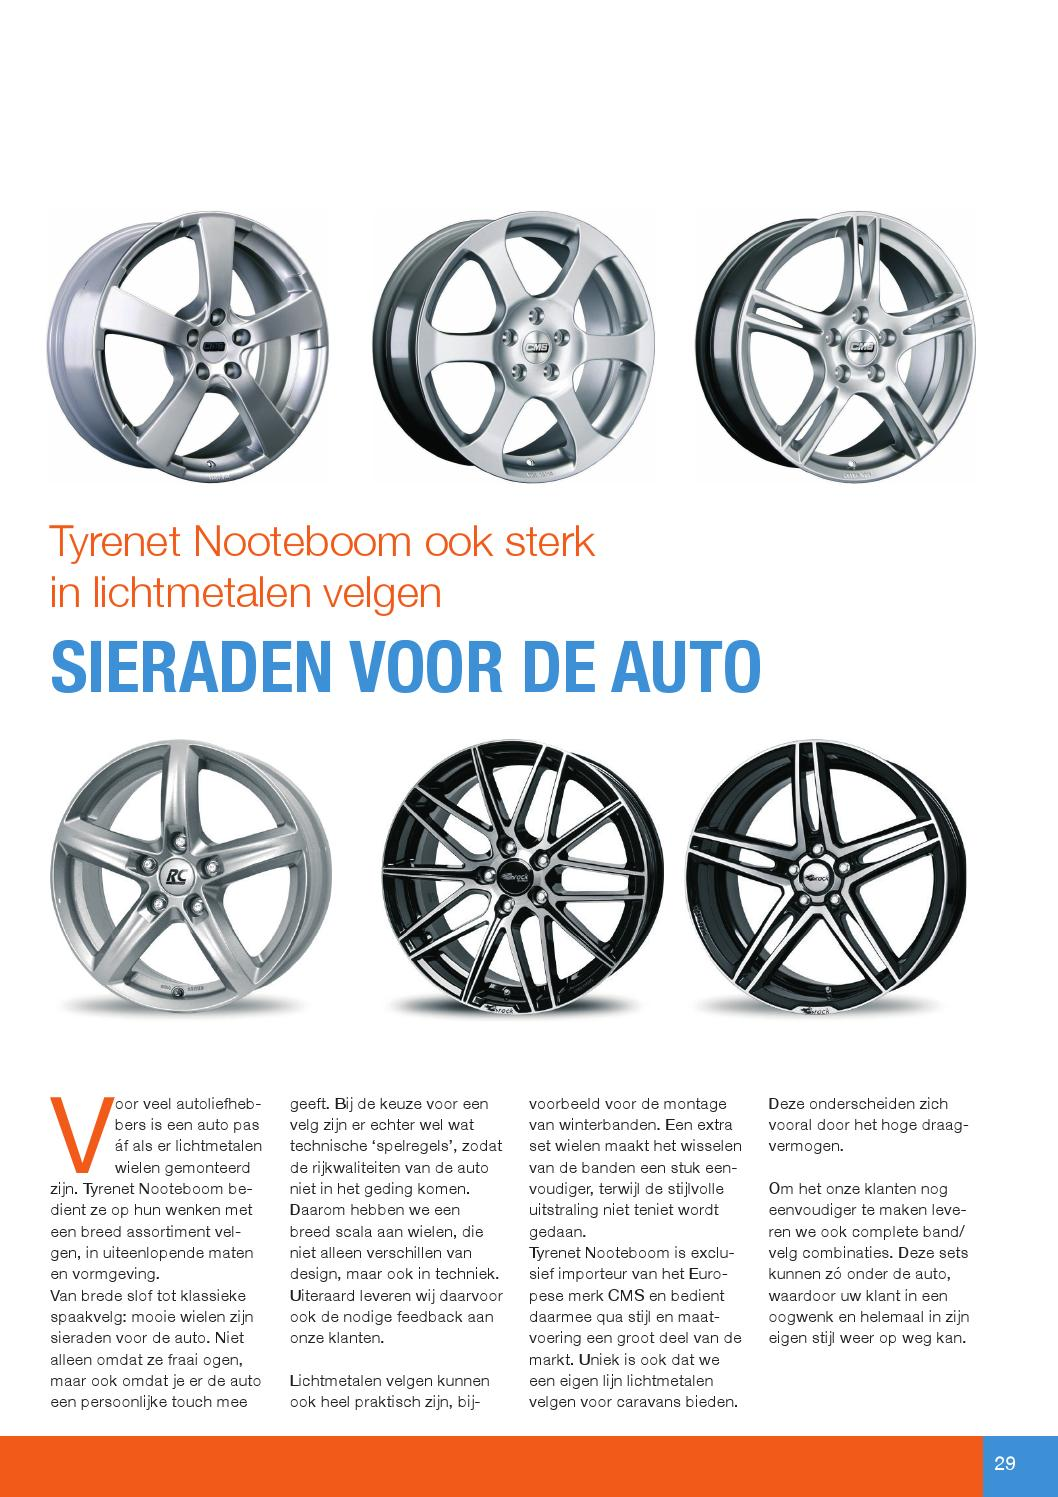 Tyrenet Nooteboom By Great Magazines Issuu